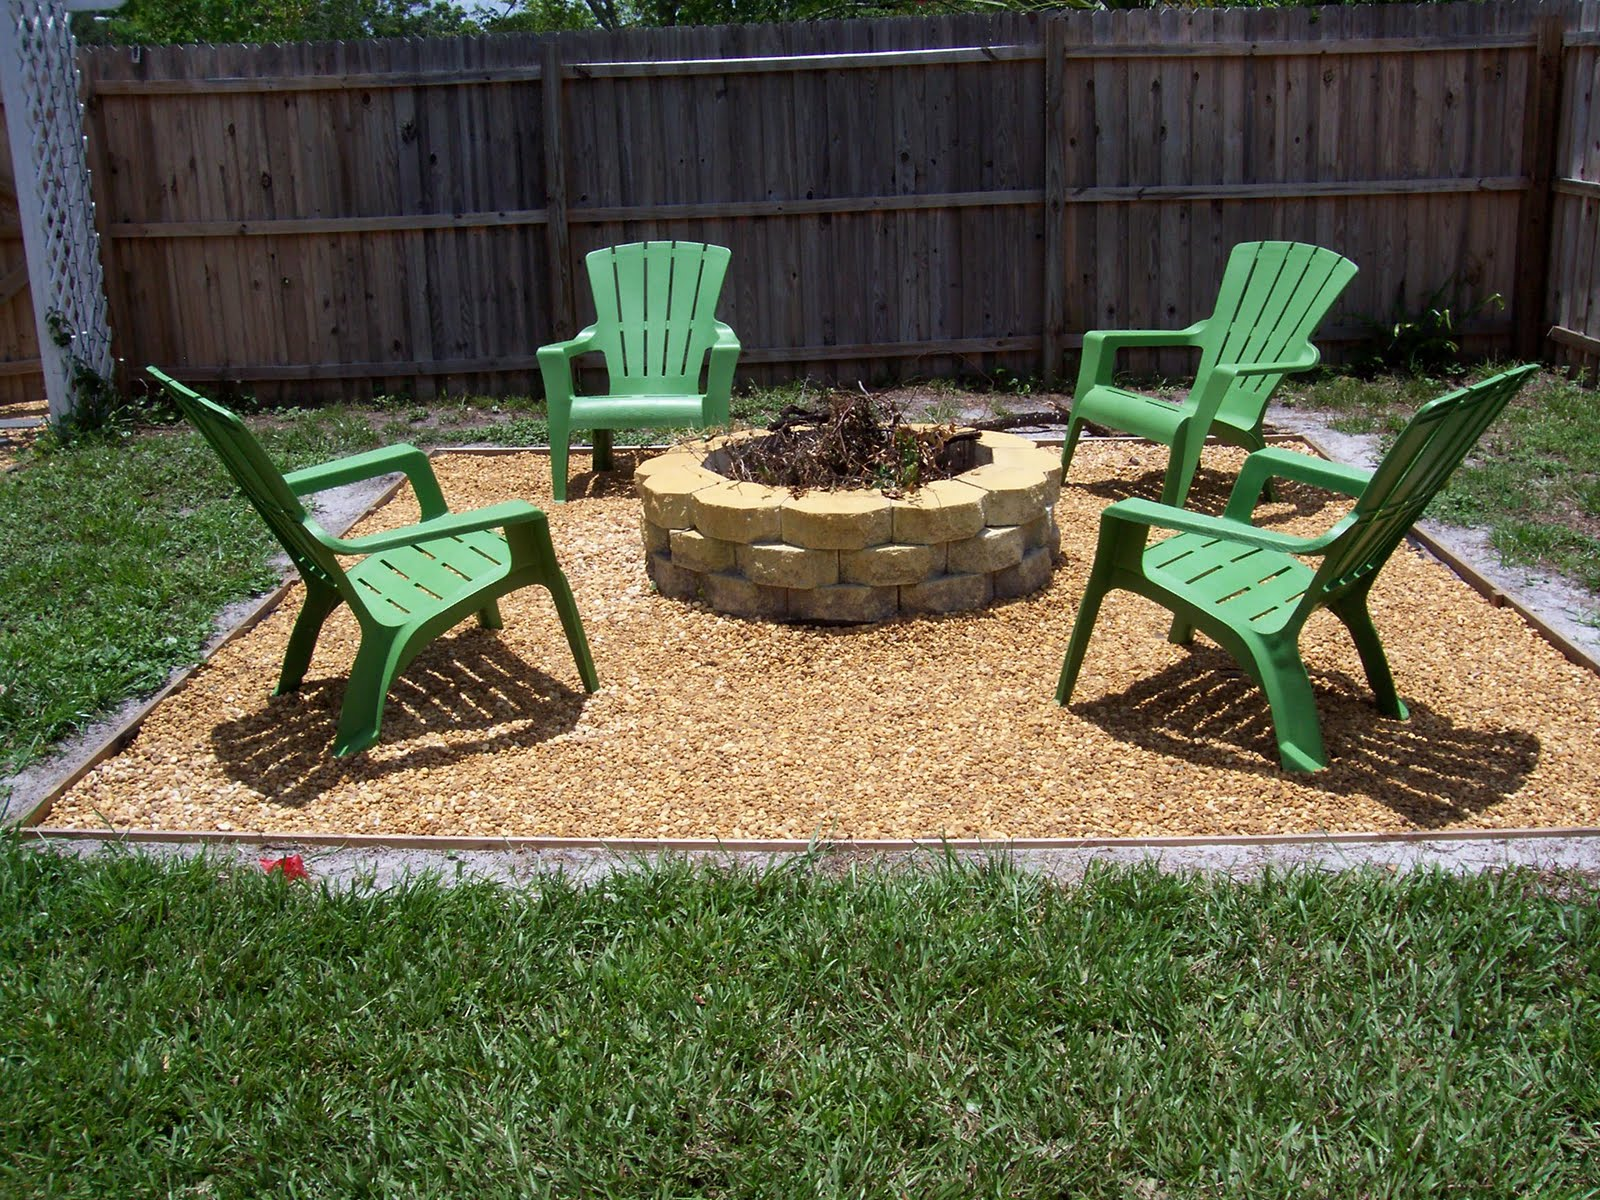 In Ground Fire Pit Design Juggles Cold Outdoor into a Warm ... on Simple Patio Designs With Fire Pit id=24266